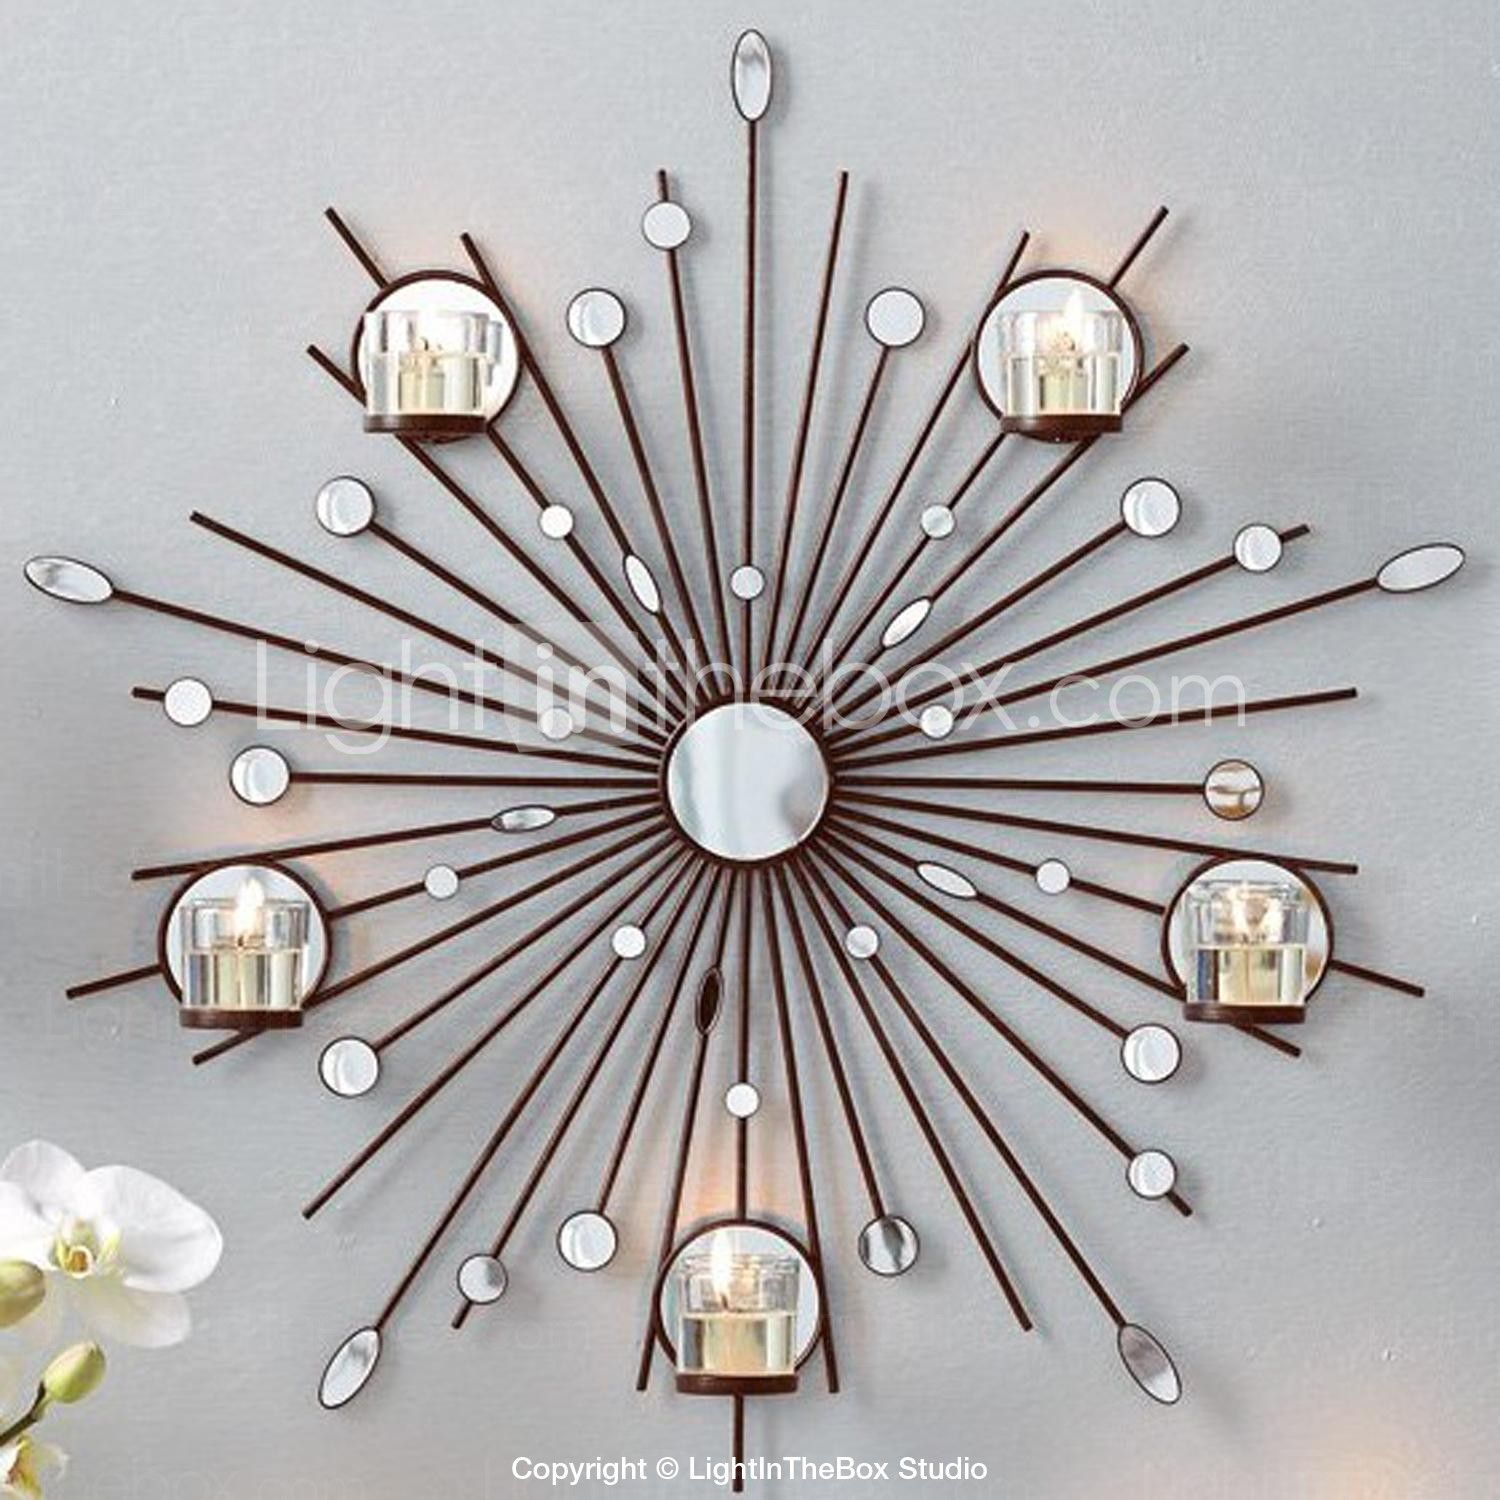 x starb accessories mirror charming decor ideas metal silver starburst wall images clock white decorations burst wholesale